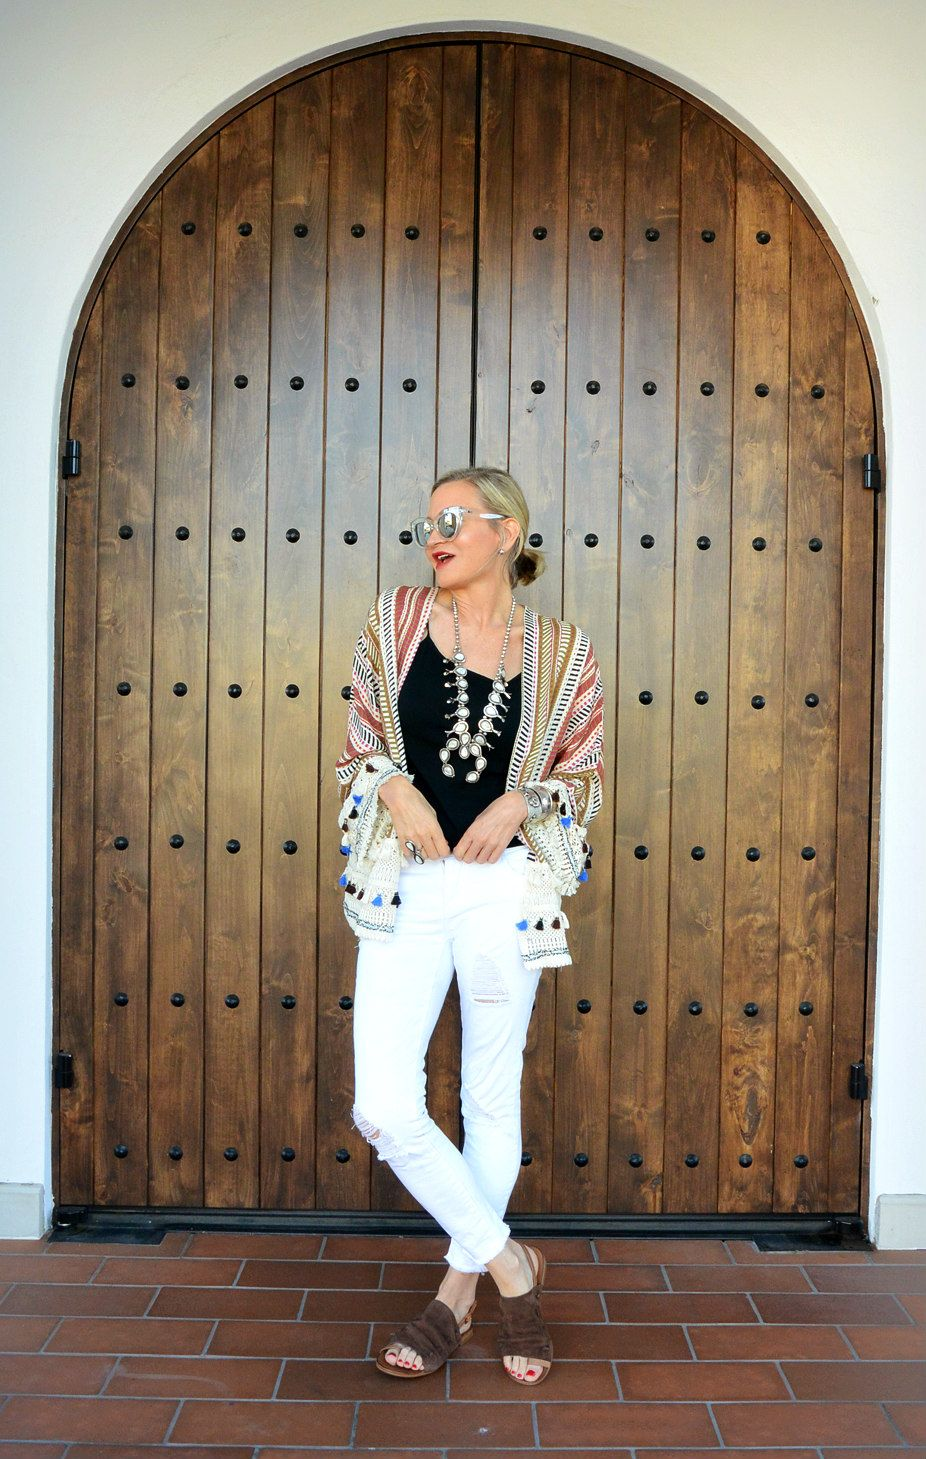 White jeans with black tank.  Add kimono jacket and white squash blossom necklace with comfy leather sandals and good to go!